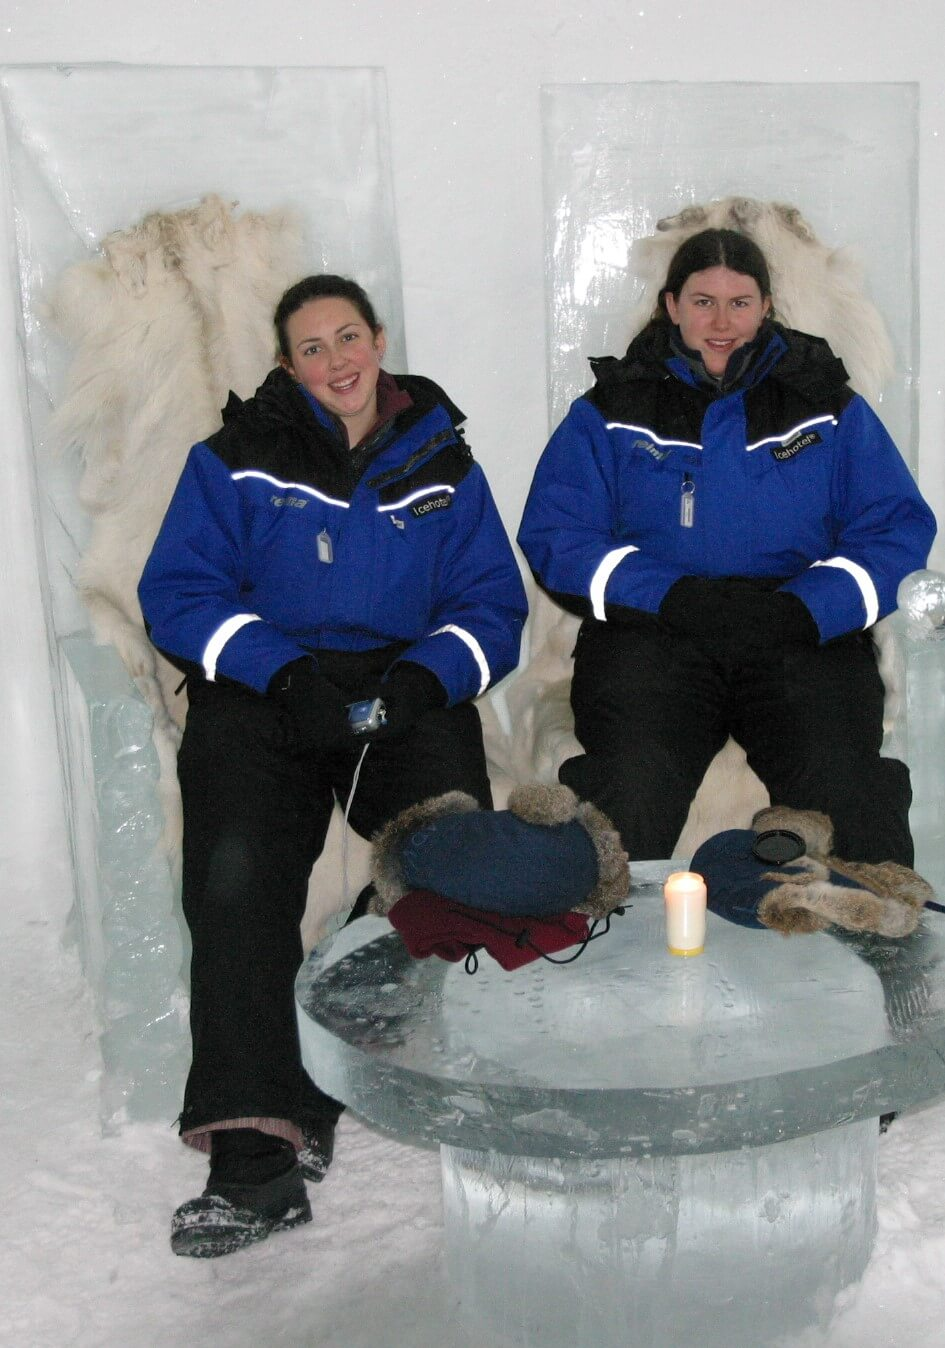 Hannah & Jo in snow suits on ice chairs at the Ice Hotel